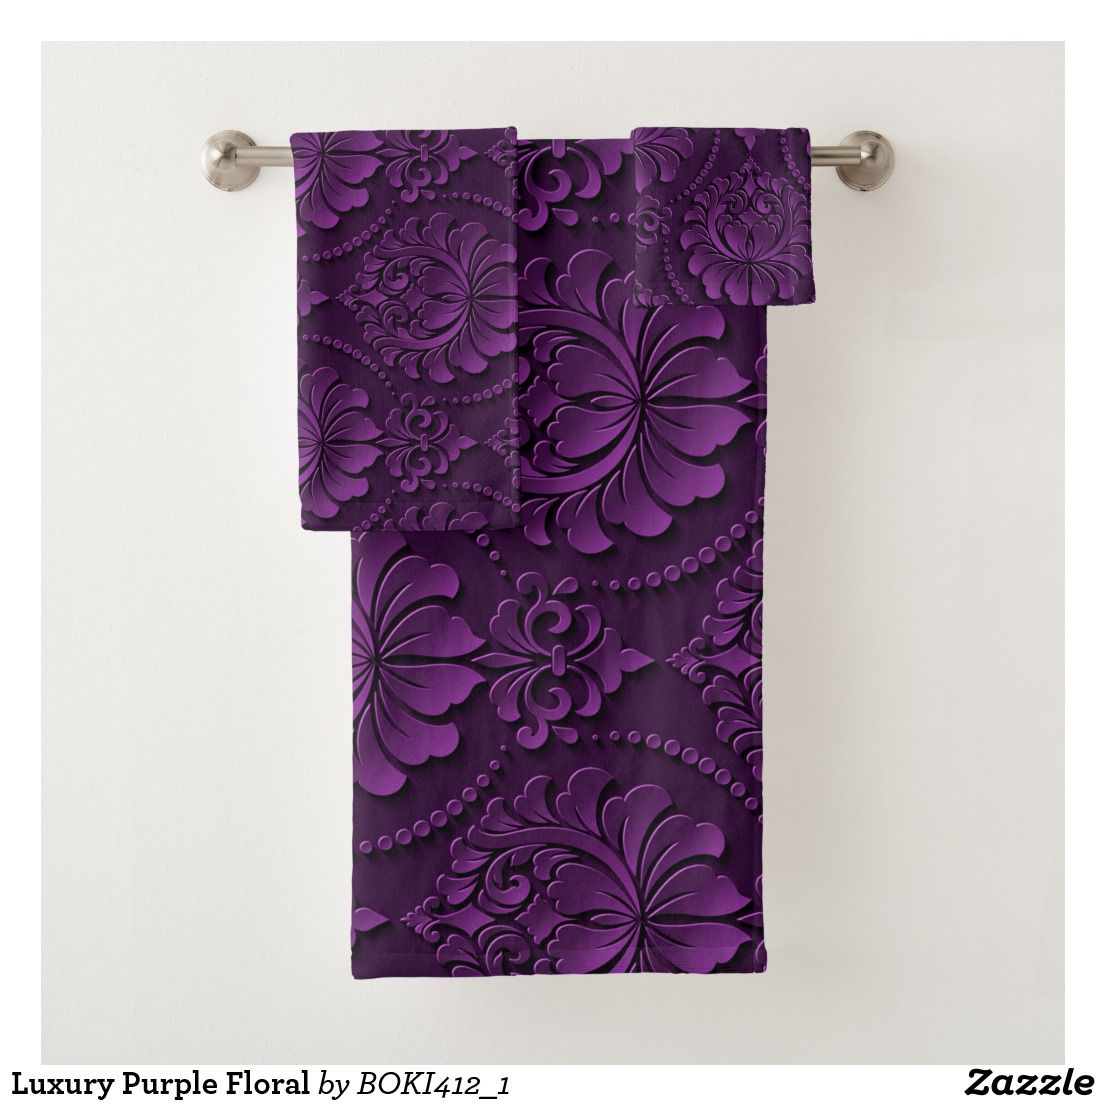 Luxury Purple Floral Bath Towel Set Zazzle Com Floral Bath Towels Bath Towel Sets Towel Set